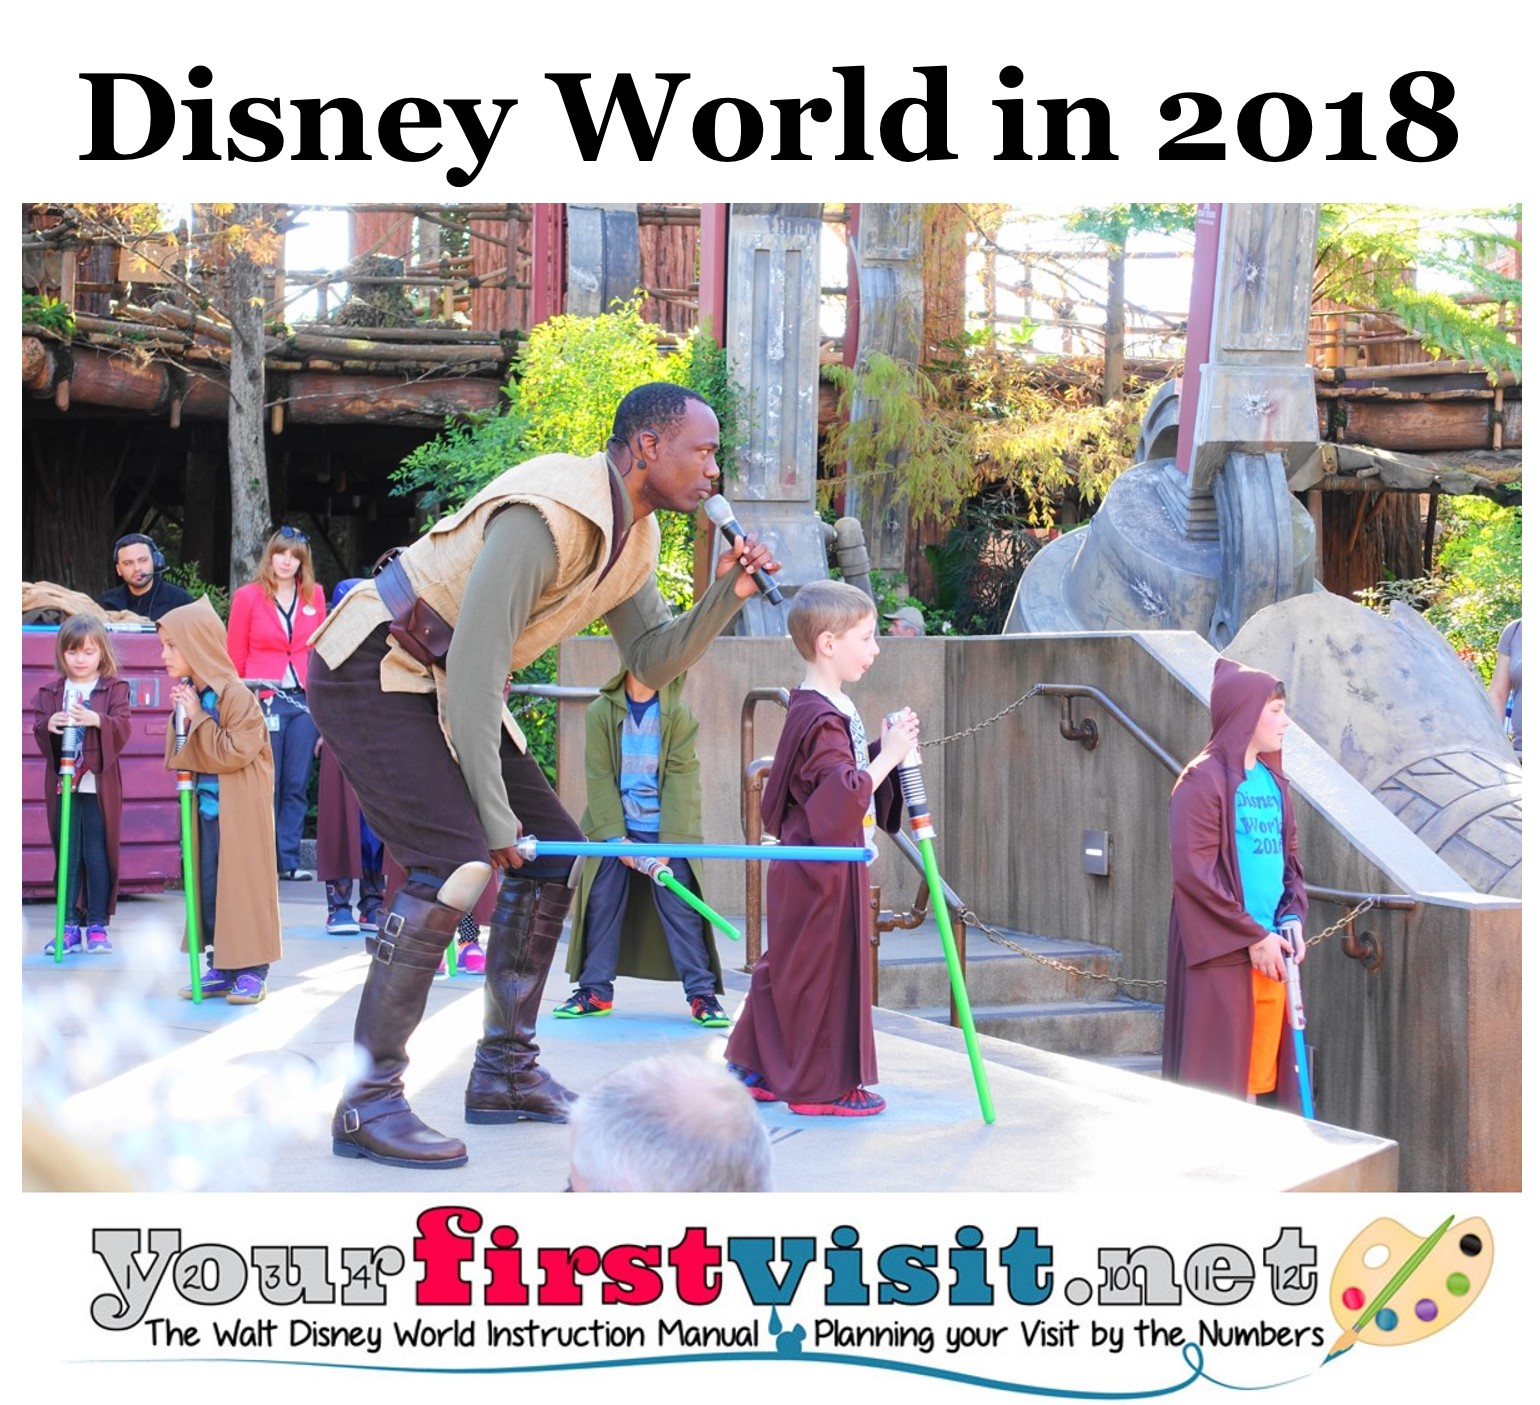 disney-world-in-2018-from-yourfirstvisit-net